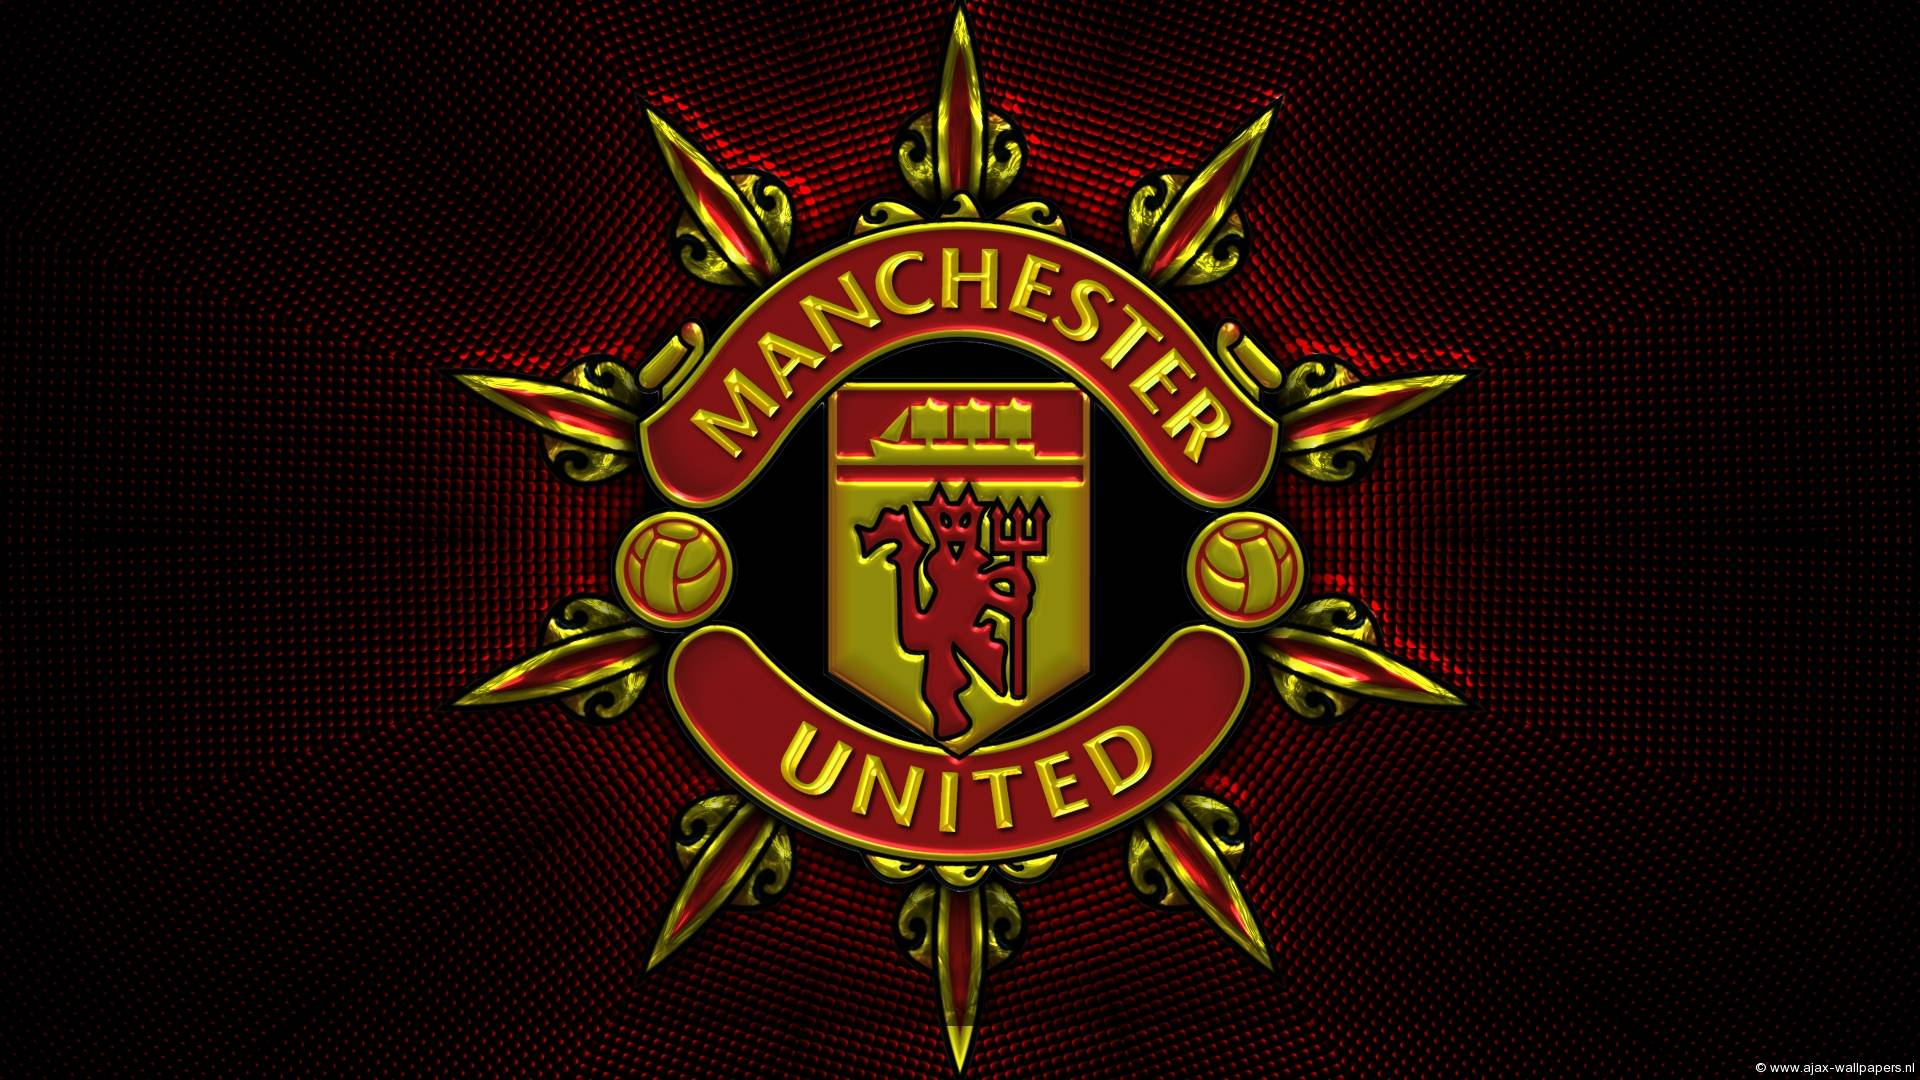 manchester united high def logo wallpapers wallpapers download